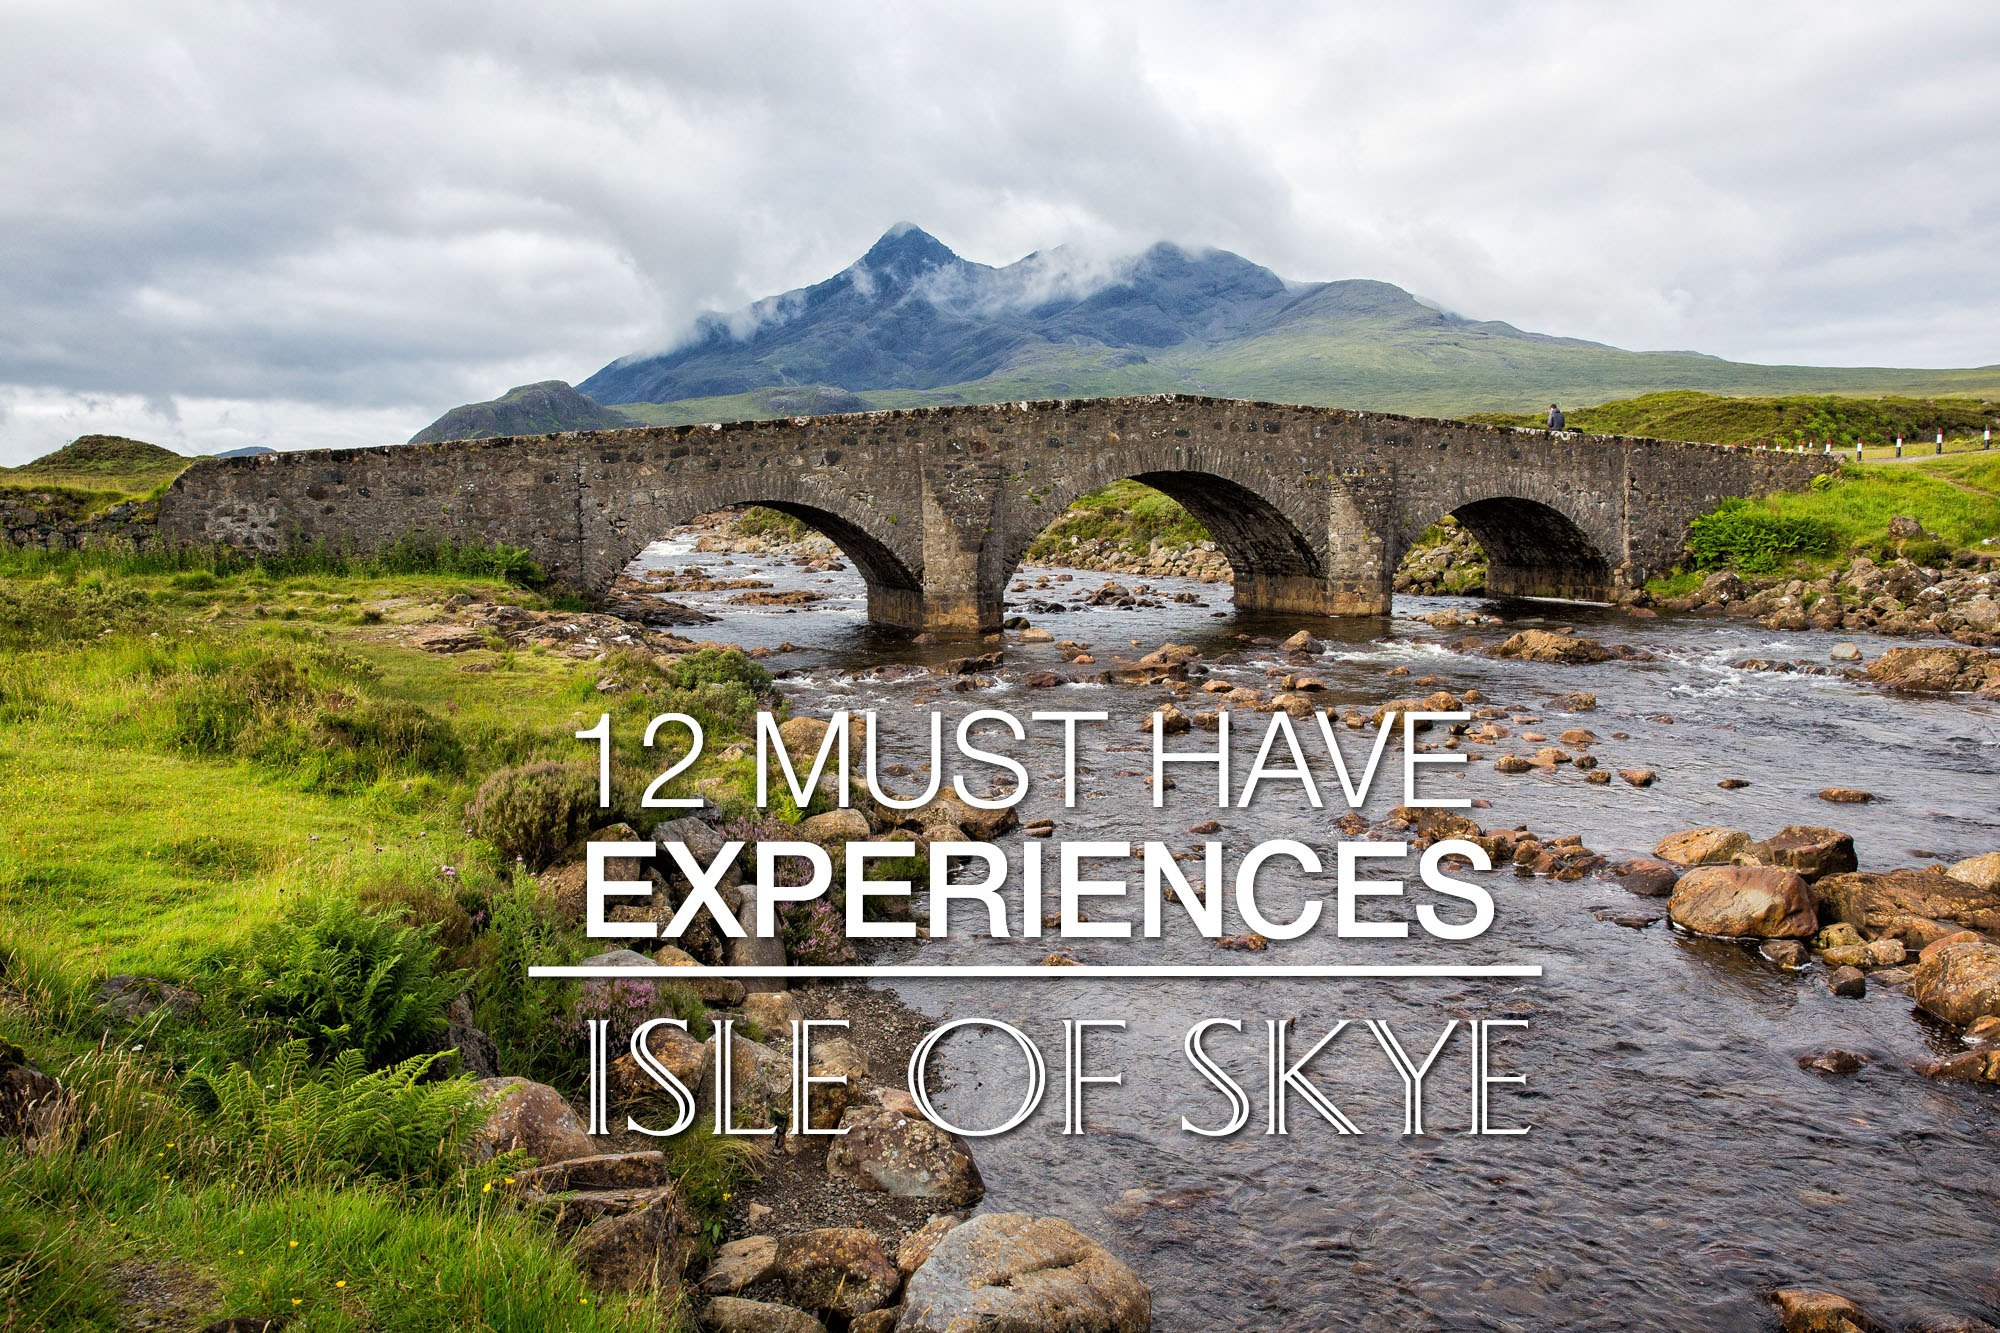 Isle of Skye best things to do